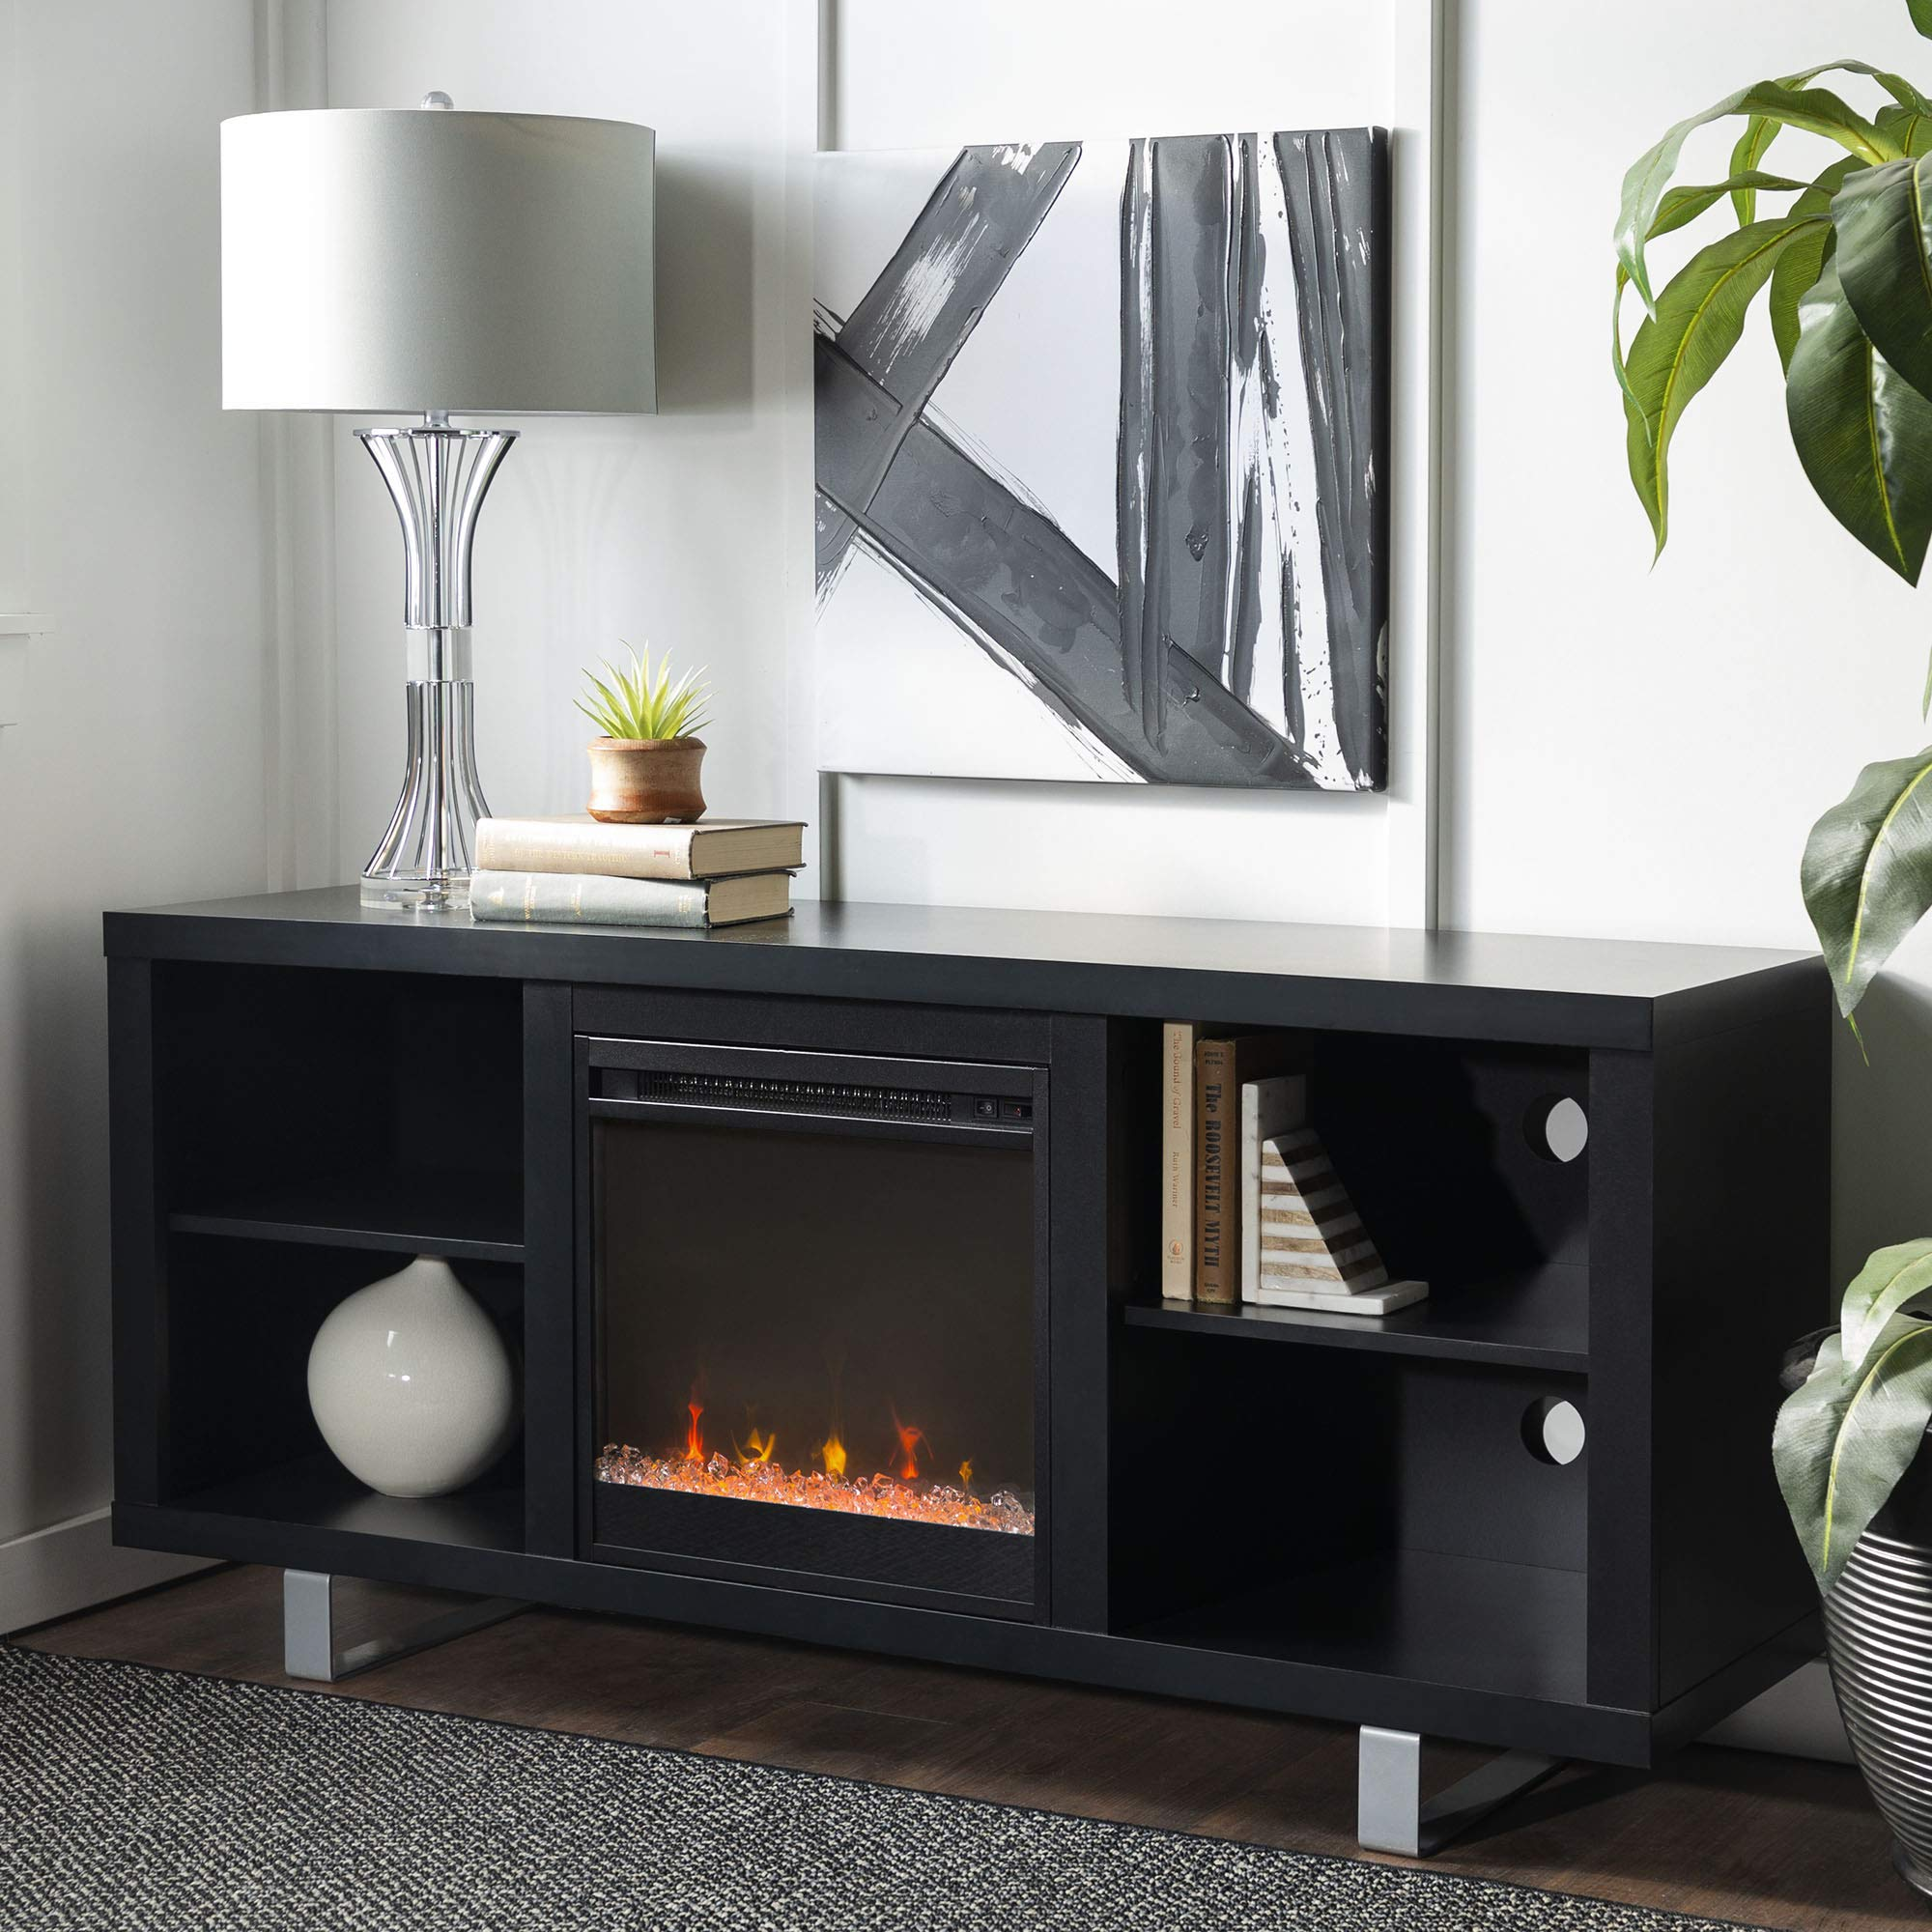 WE Furniture 58'' Simple Modern Fireplace TV Console, Black by WE Furniture